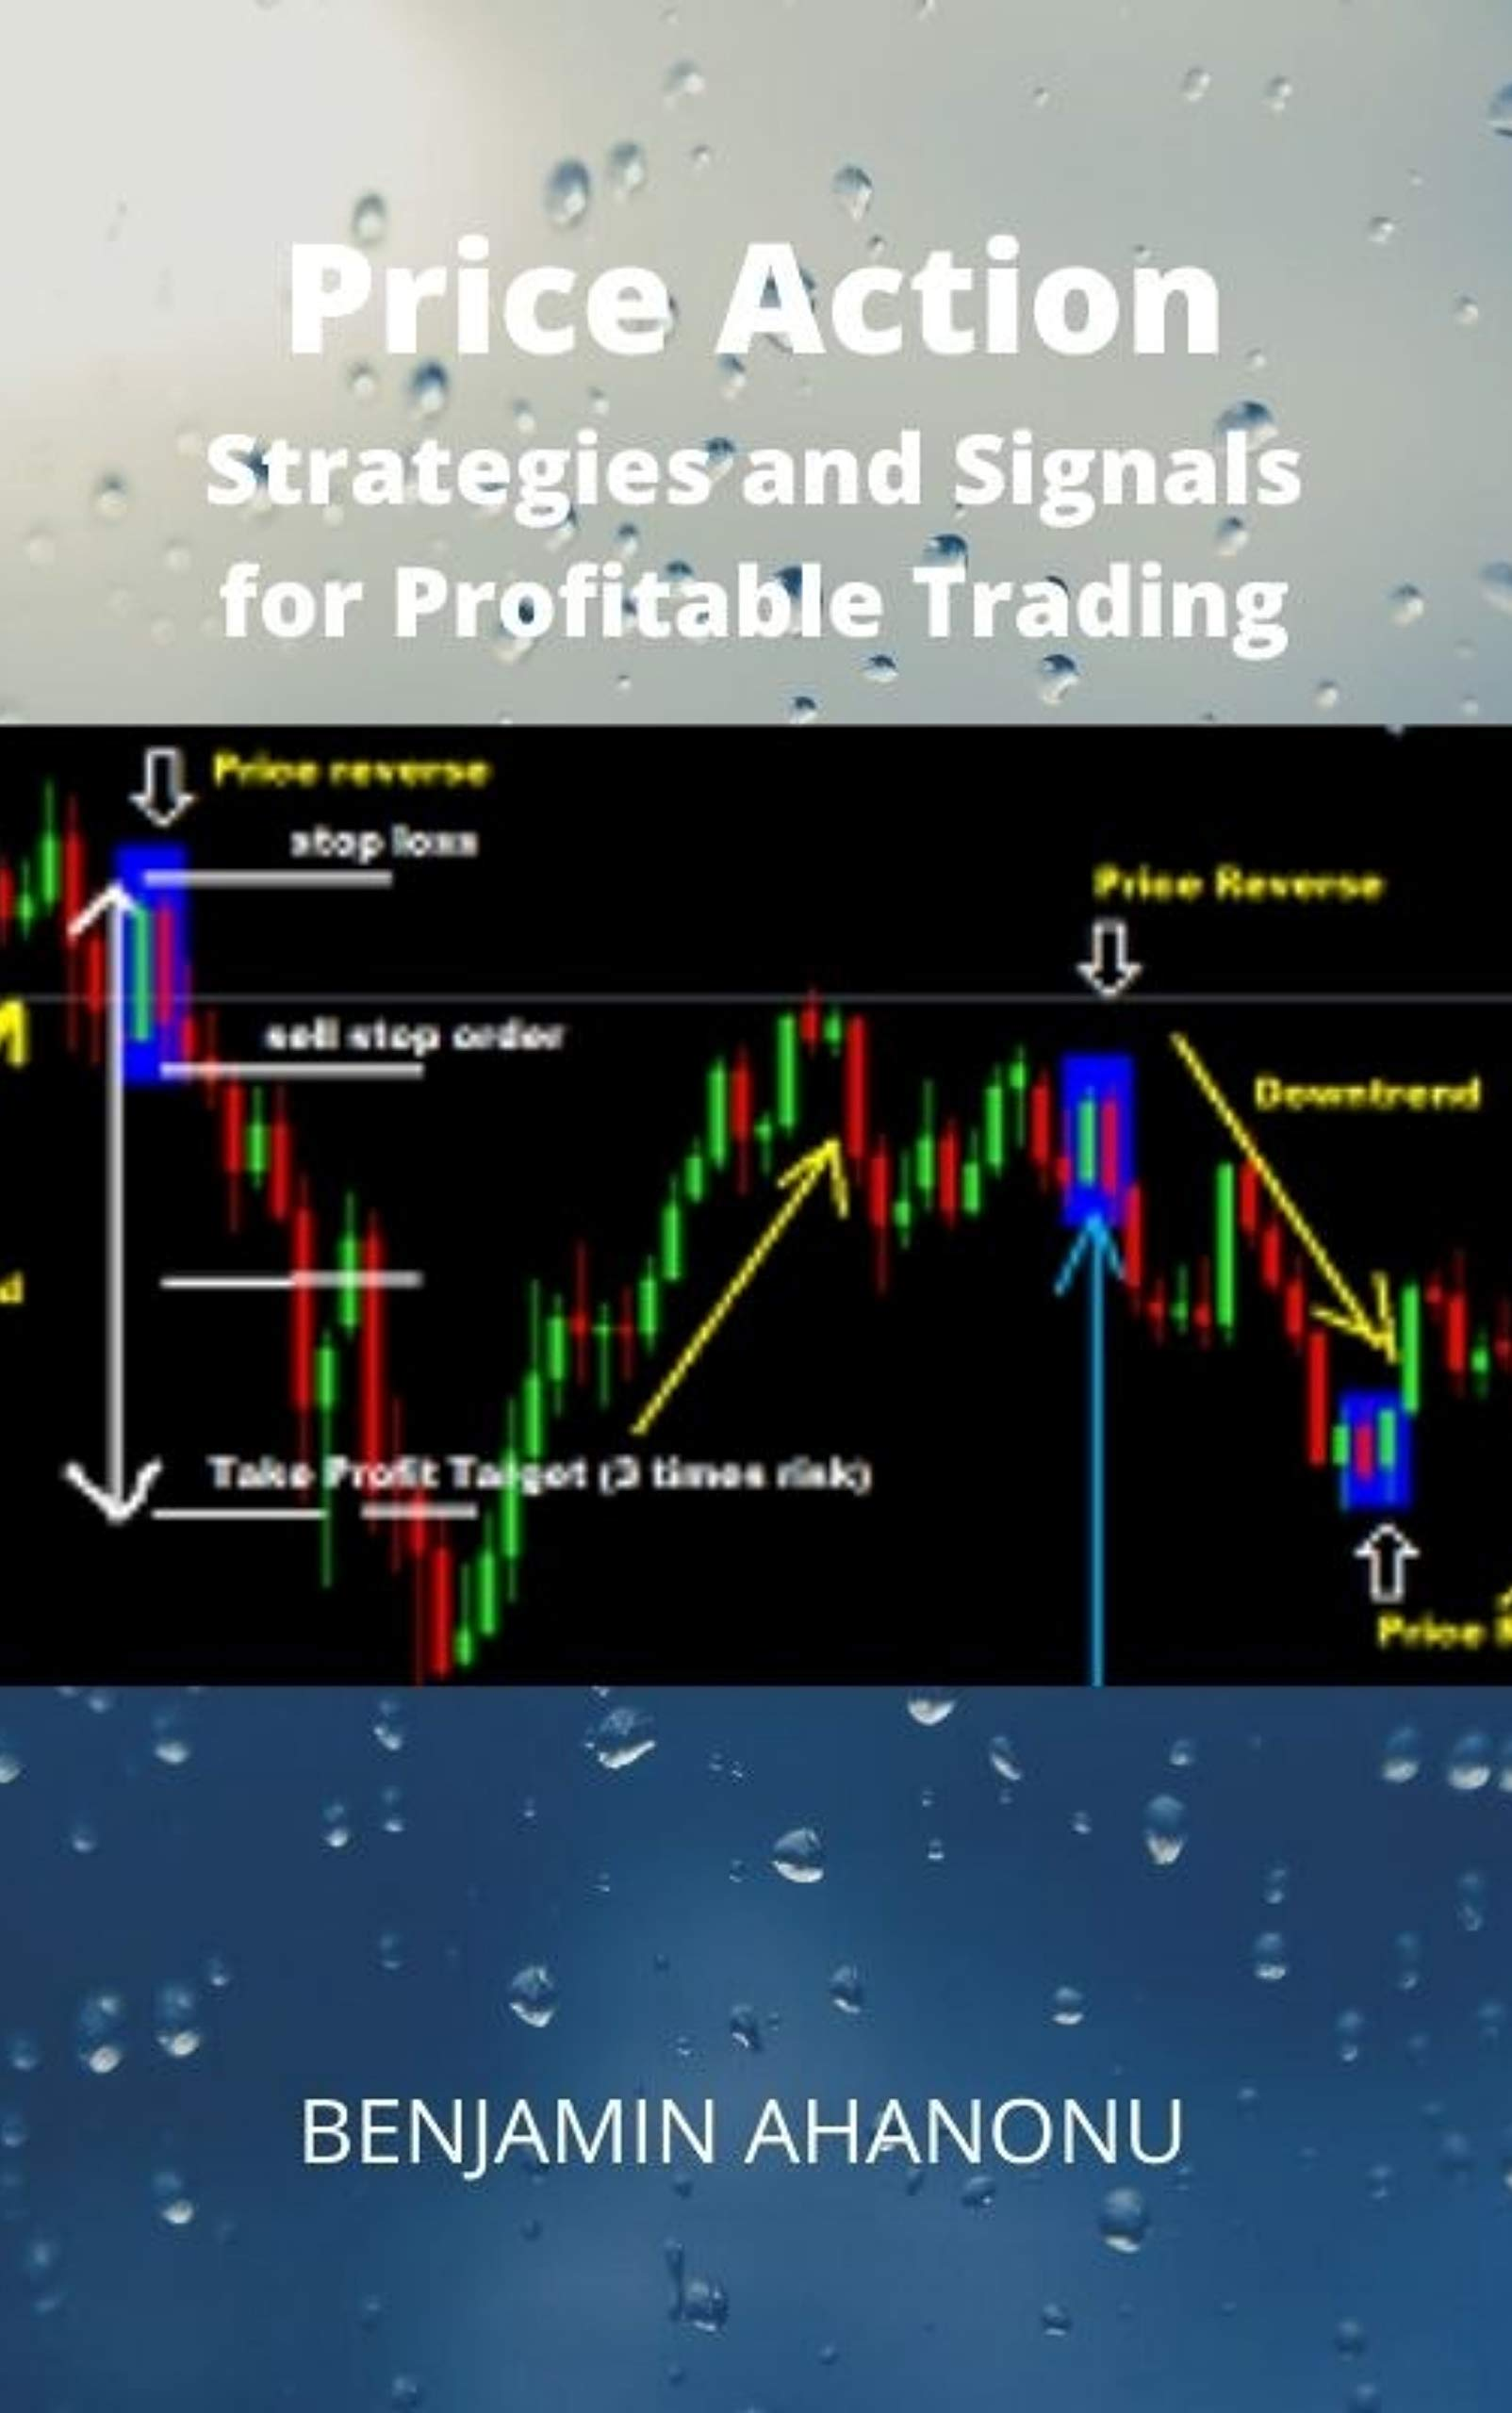 PRICE ACTION STRATEGIES AND SIGNALS: FOR PROFITABLE TRADING